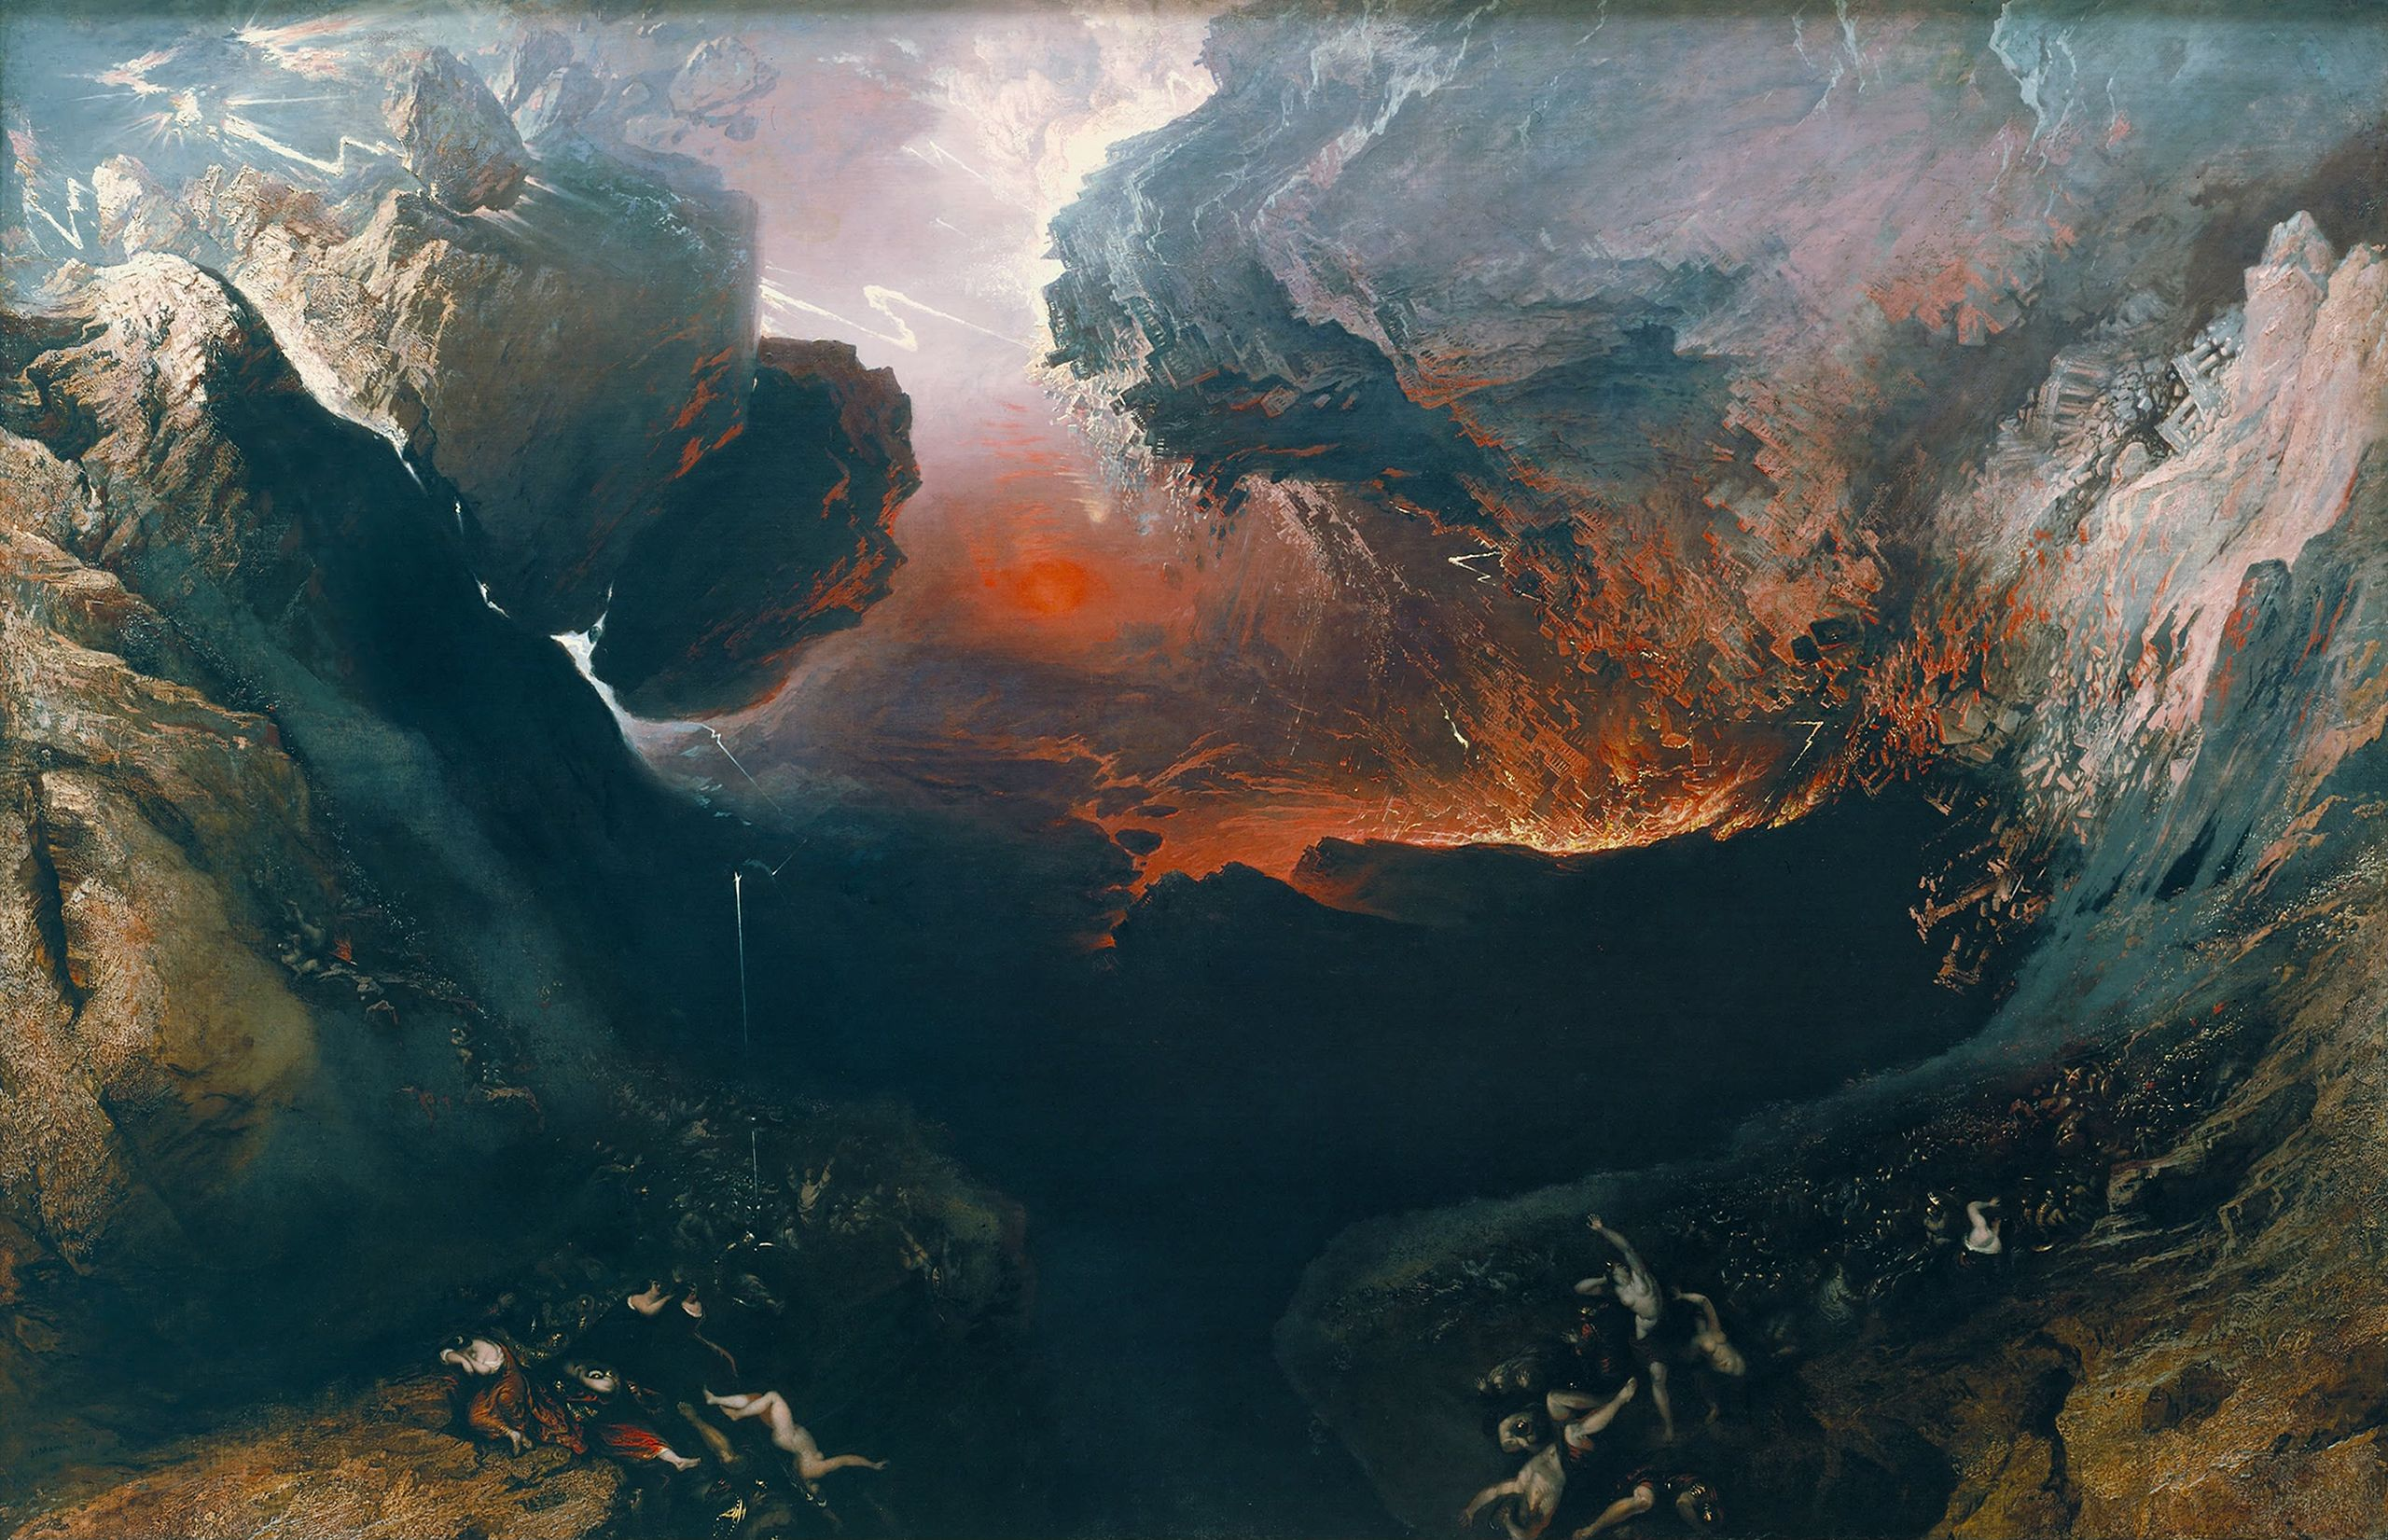 John Martin. The Great Day of His Warth. 1853